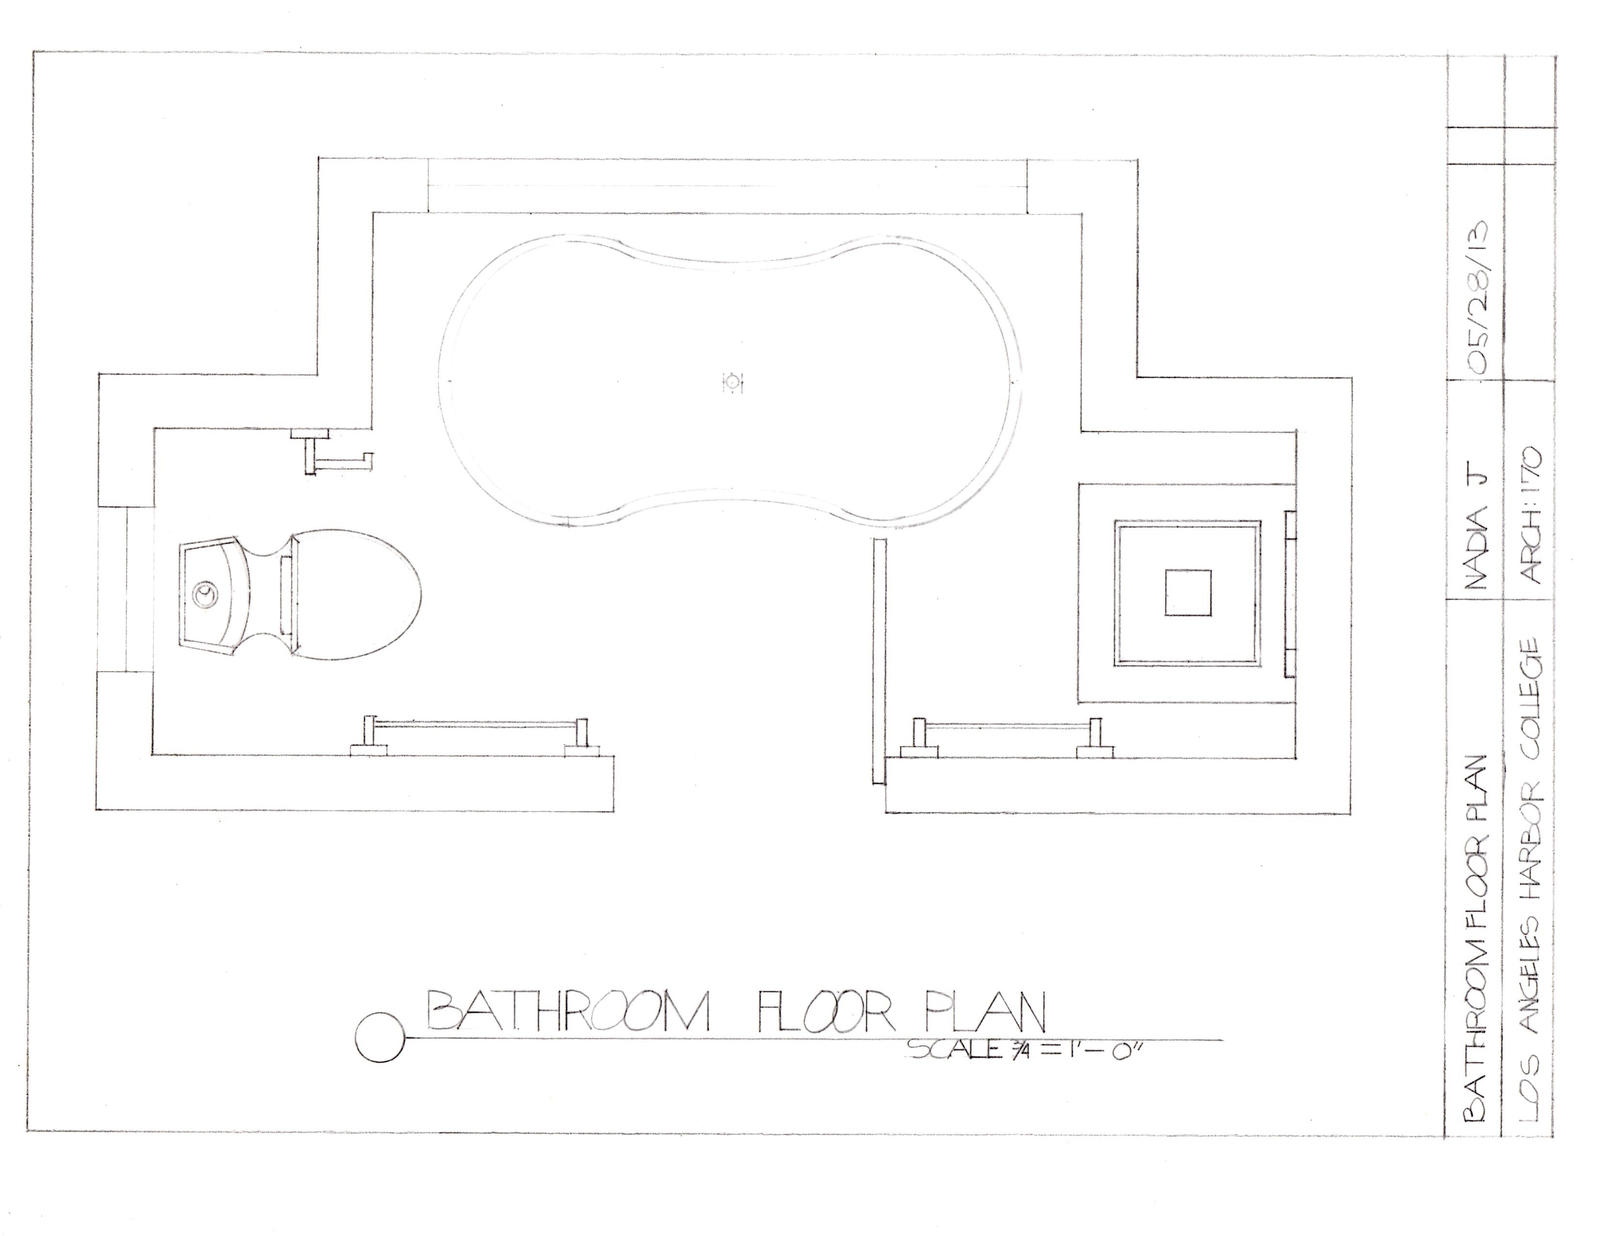 5 x 8 bathroom floor plan by tackygirl on deviantart for 4 x 8 bathroom layout